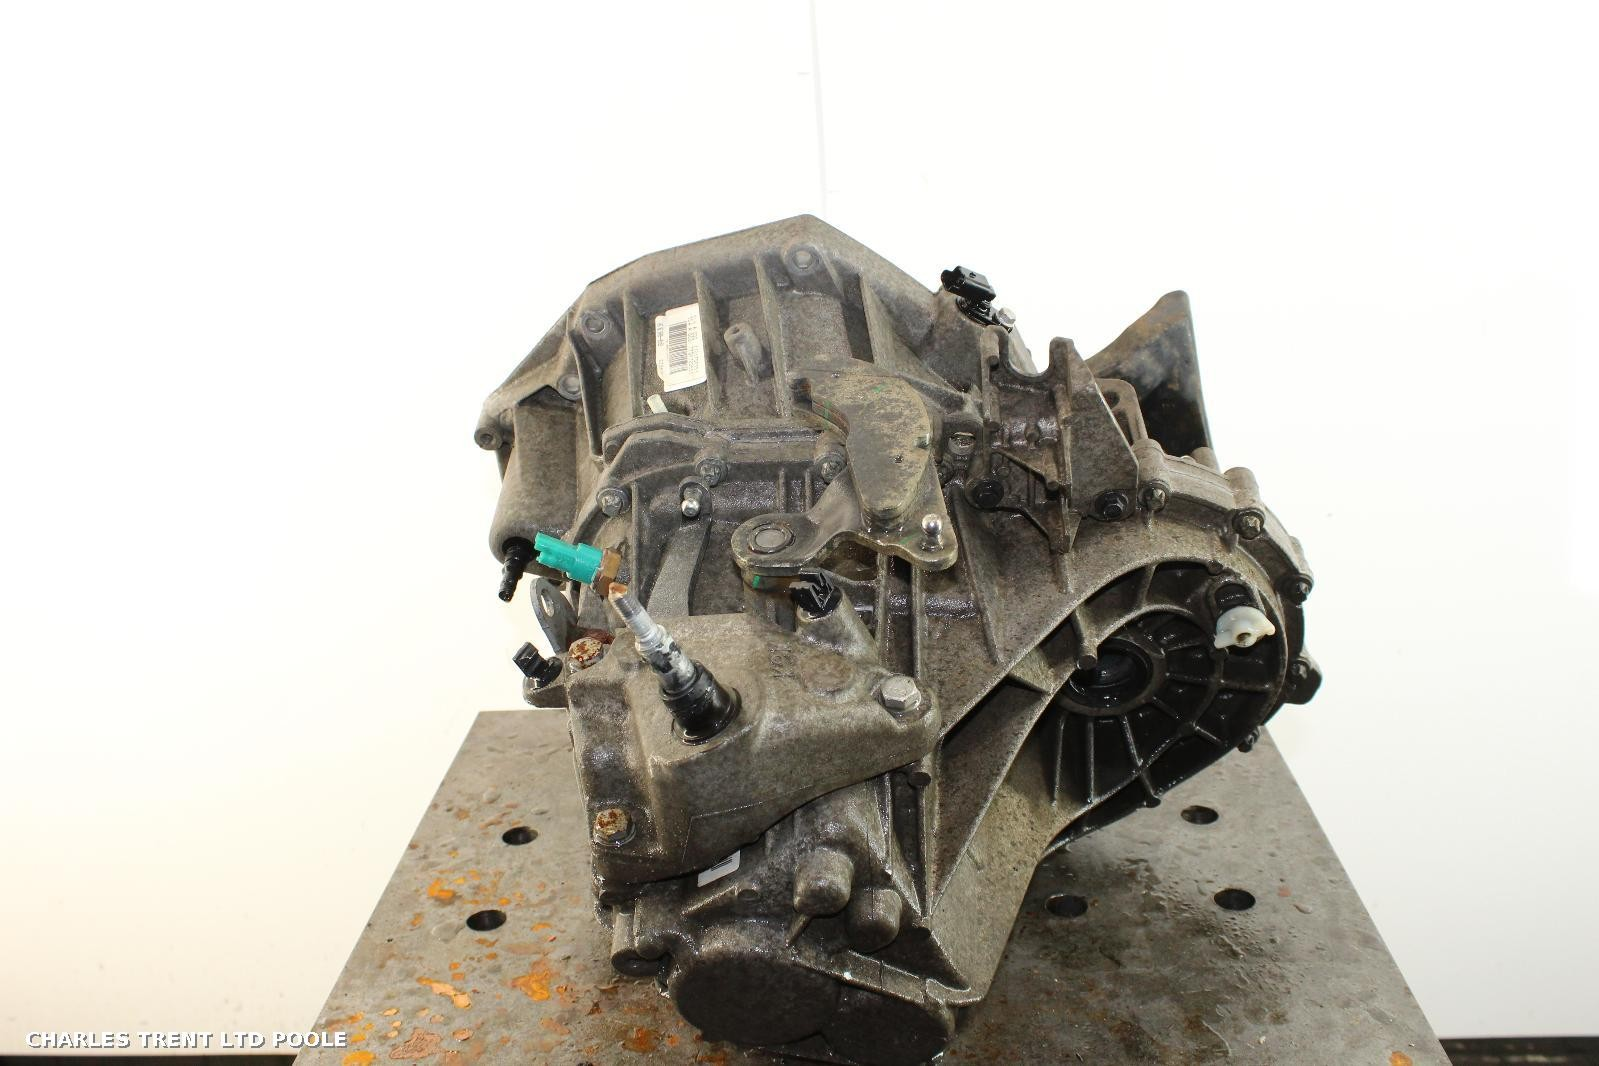 2008 - RENAULT - SCENIC - GEARBOXES / TRANSMISSIONS